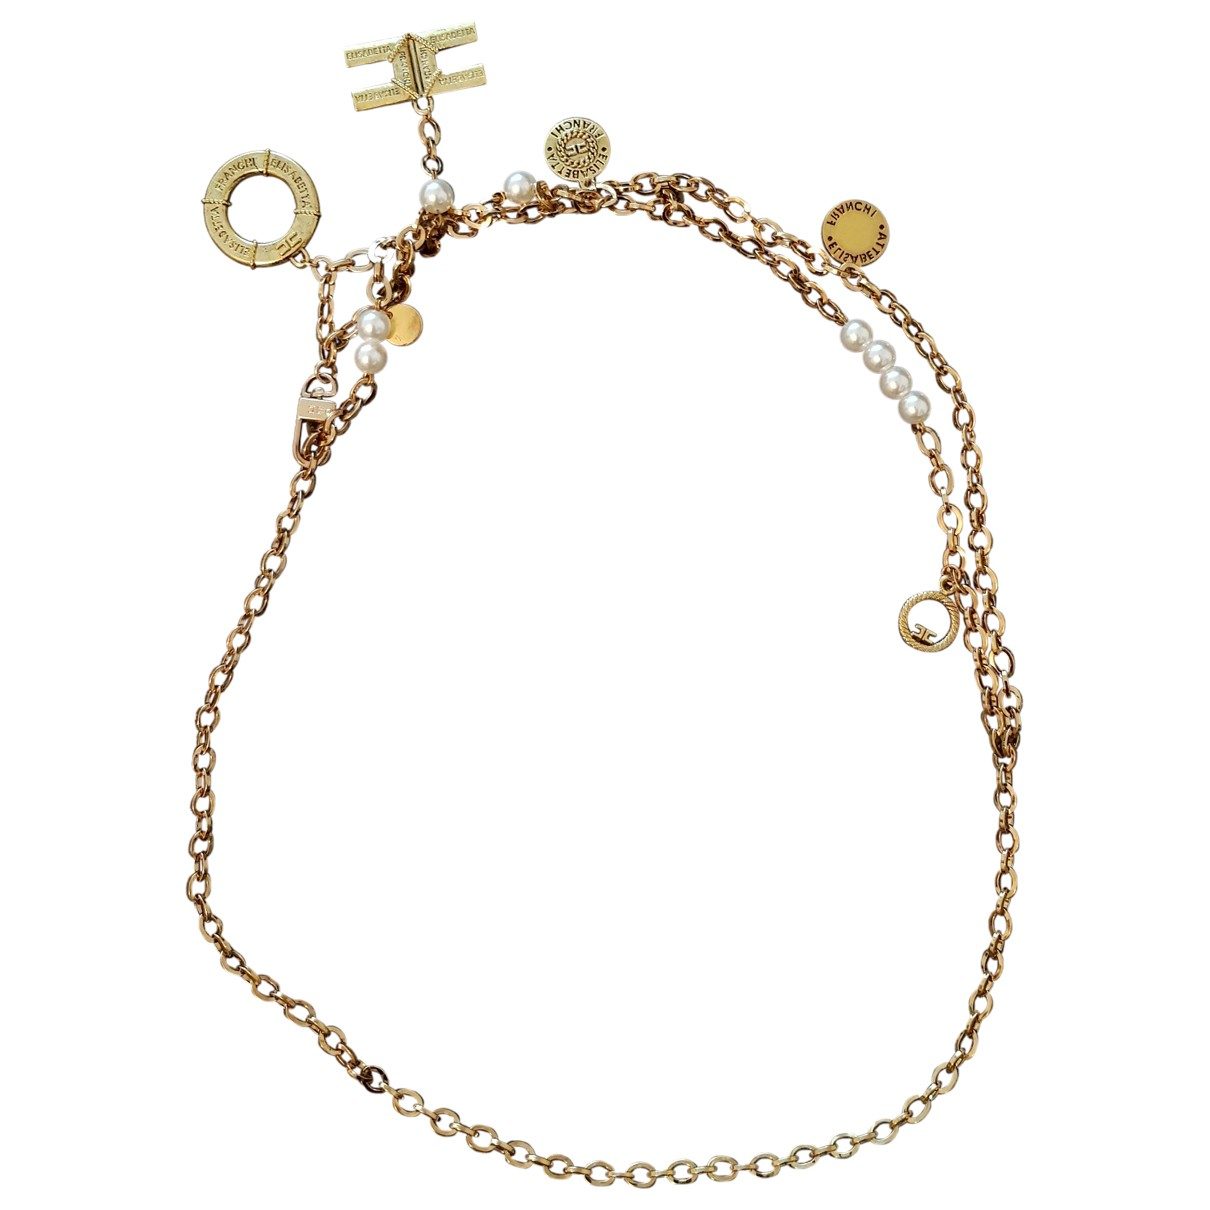 Elisabetta Franchi N Gold belt for Women M International